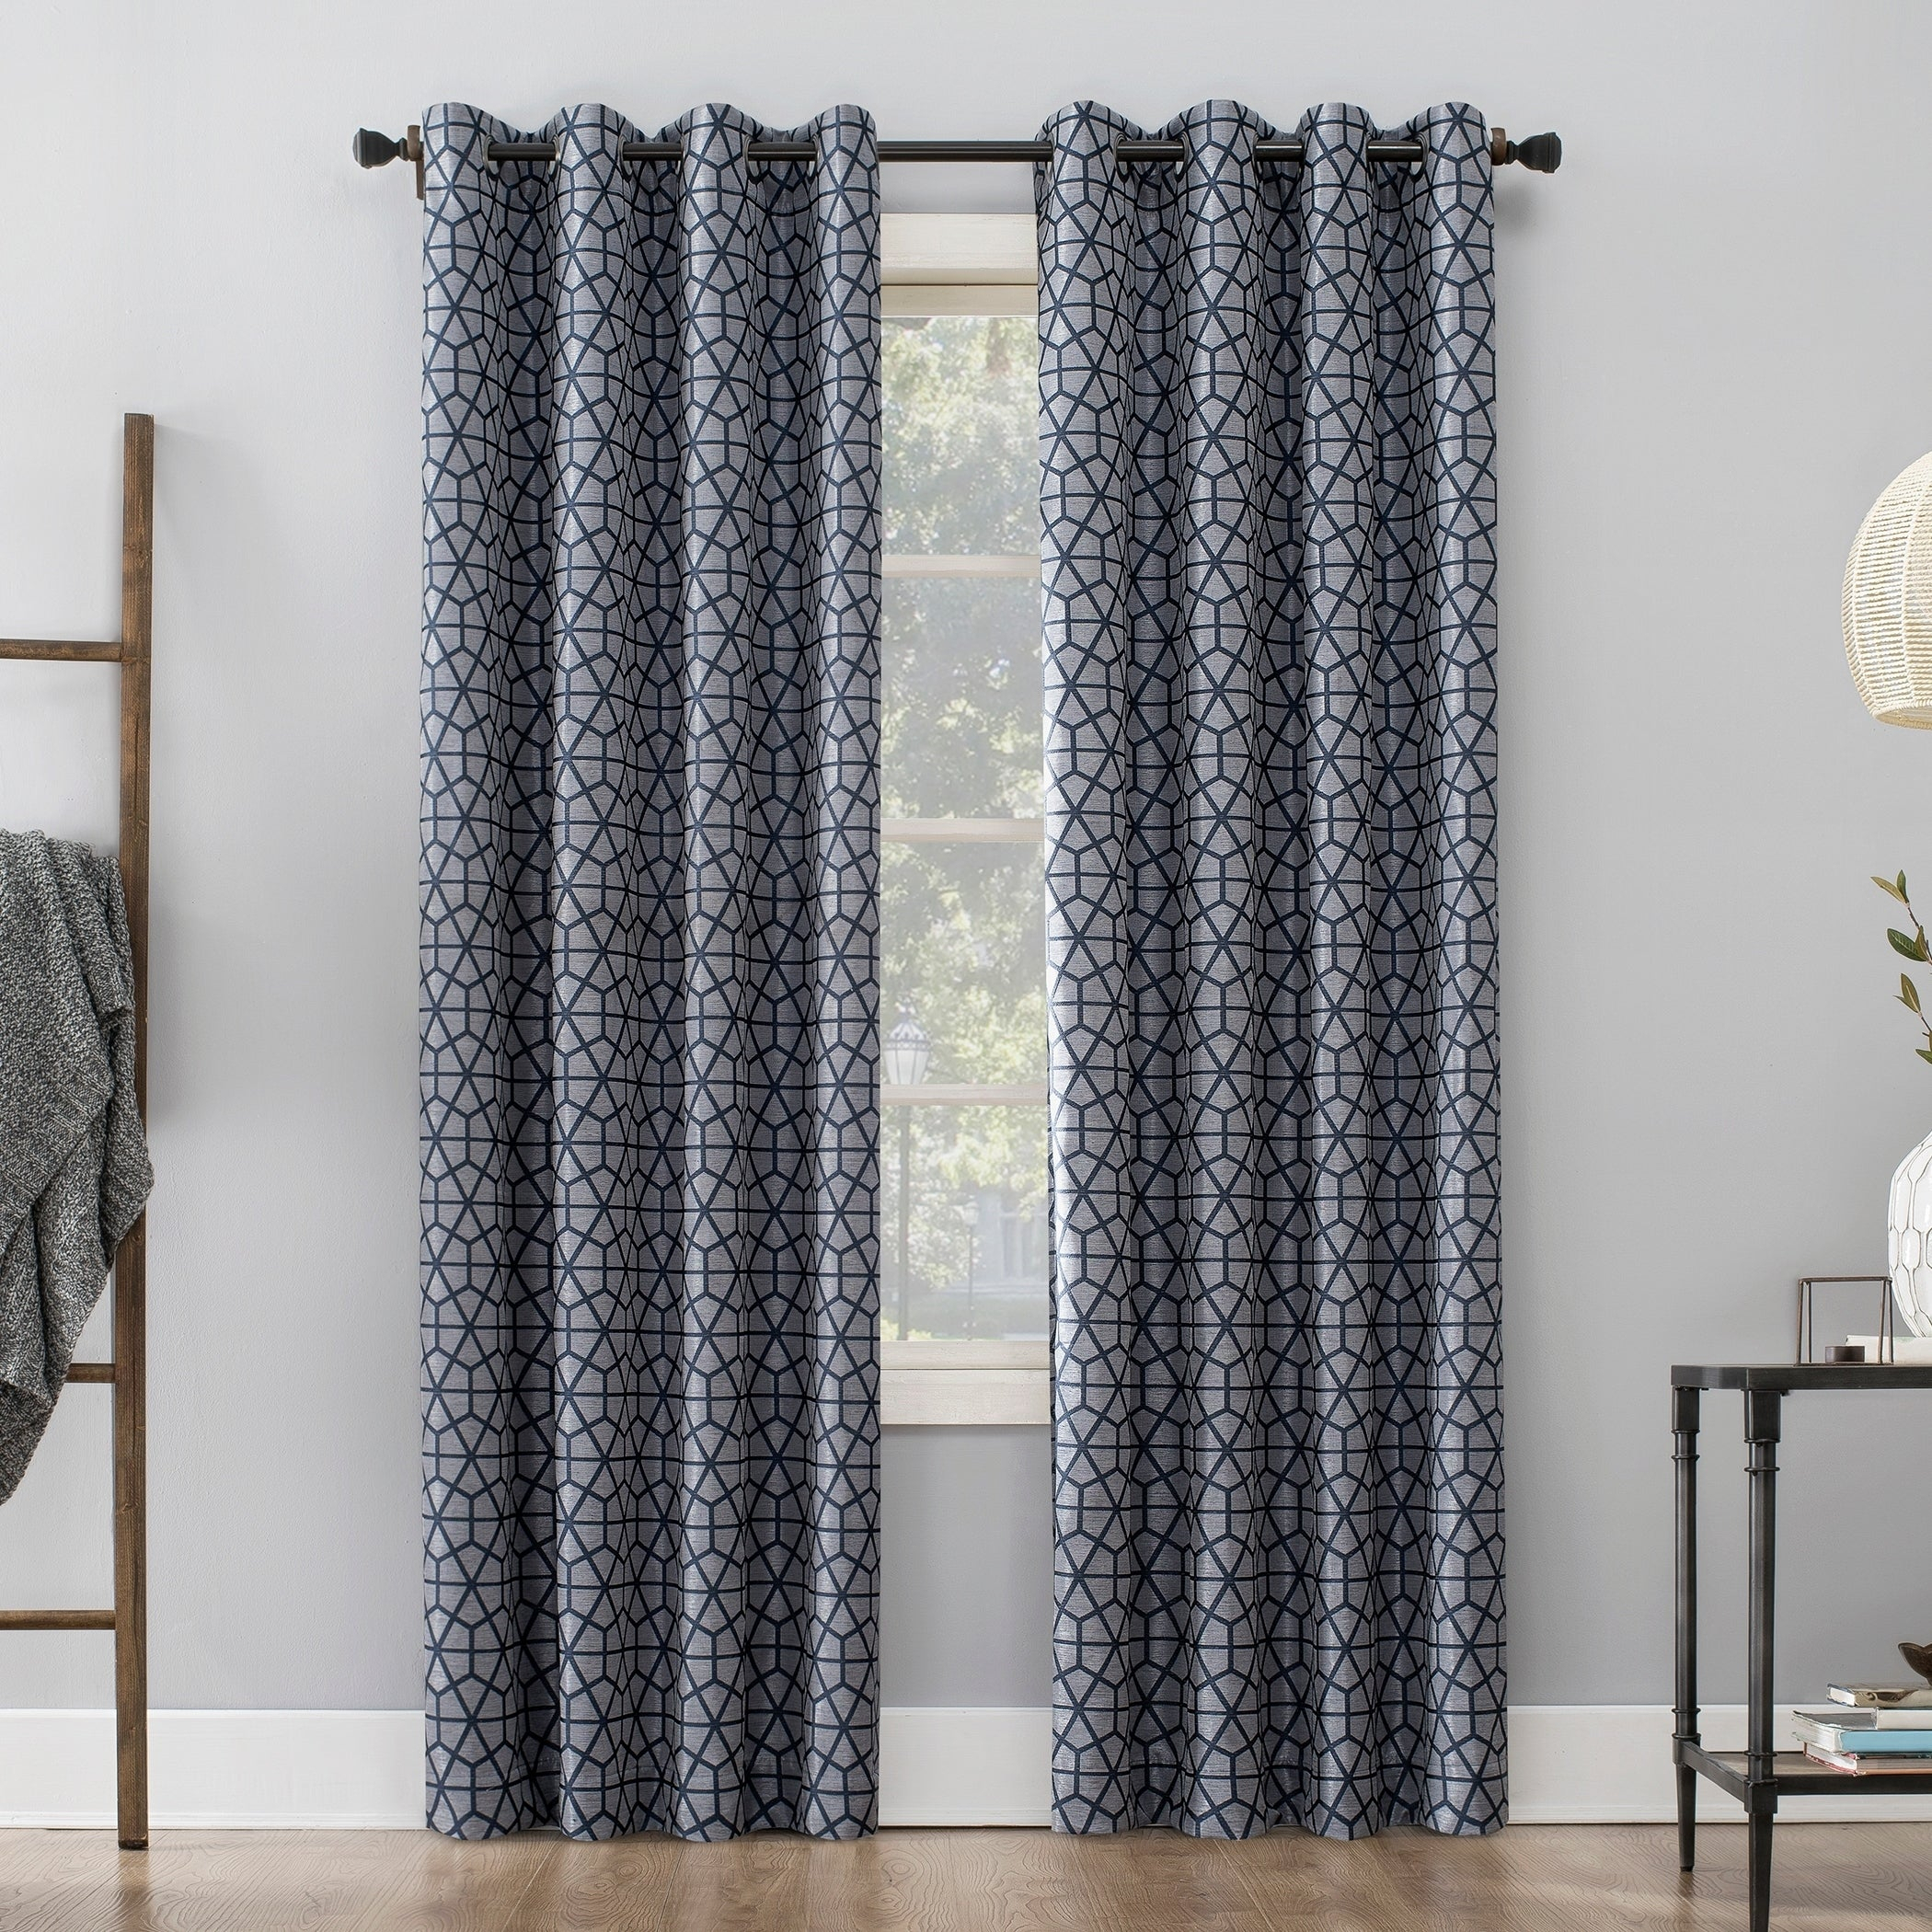 Sun Zero Burke Twill Mosaic Extreme 100% Blackout Grommet Curtain Panel With Embossed Thermal Weaved Blackout Grommet Drapery Curtains (View 7 of 20)